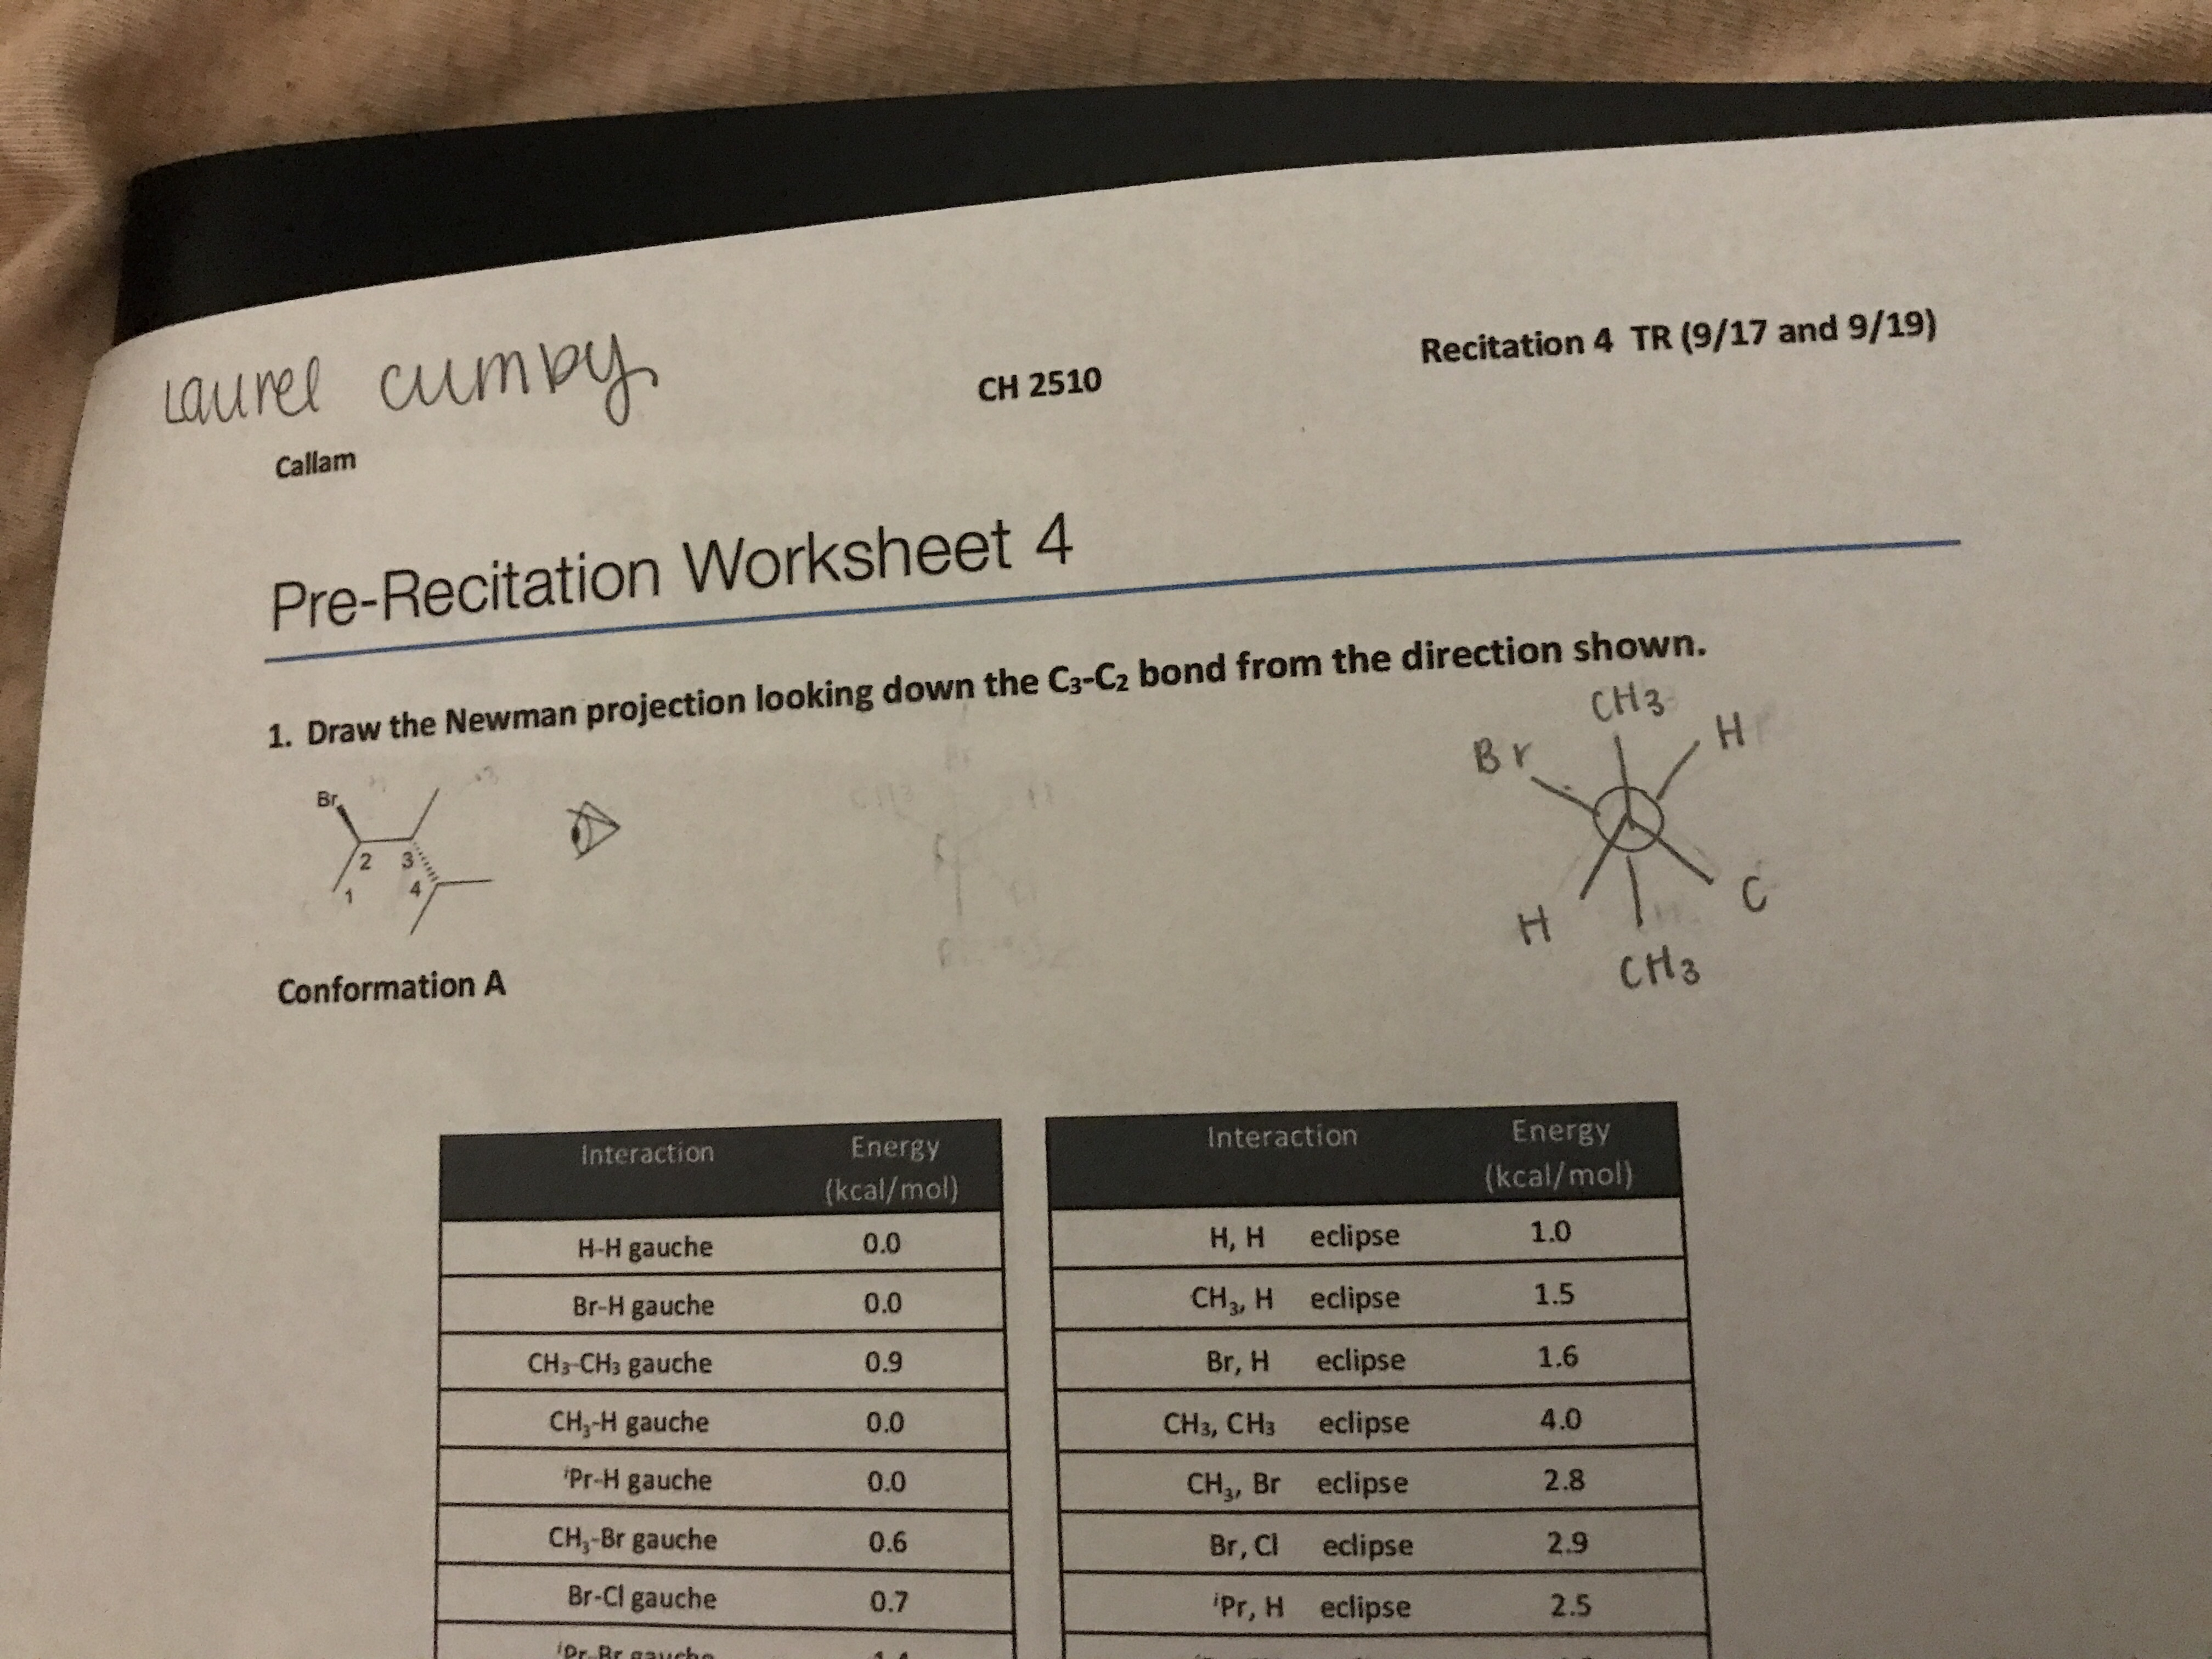 Recitation 4 TR (9/17 and 9/19) aurel cumpy CH 2510 Callam Pre-Recitation Worksheet 4 1. Draw the Newman projection looking down the C3-Cz bond from the direction shown. HH CH3 Br Br 2 CH3 Conformation A Energy Interaction Energy Interaction (kcal/mol) (kcal/mol) 1.0 Н, н eclipse 0.0 H-H gauche 1.5 CH3, H eclipse Br-H gauche 0.0 1.6 eclipse CH3-CH3 gauche Br, H 0.9 4.0 CH,-H gauche eclipse 0.0 CH3, CH3 Pr-H gauche 2.8 0.0 CH3, Br eclipse CH,-Br gauche 0.6 2.9 Br, Cl eclipse Br-Cl gauche 0.7 Pr, H eclipse 2.5 iDr Br aaueho I